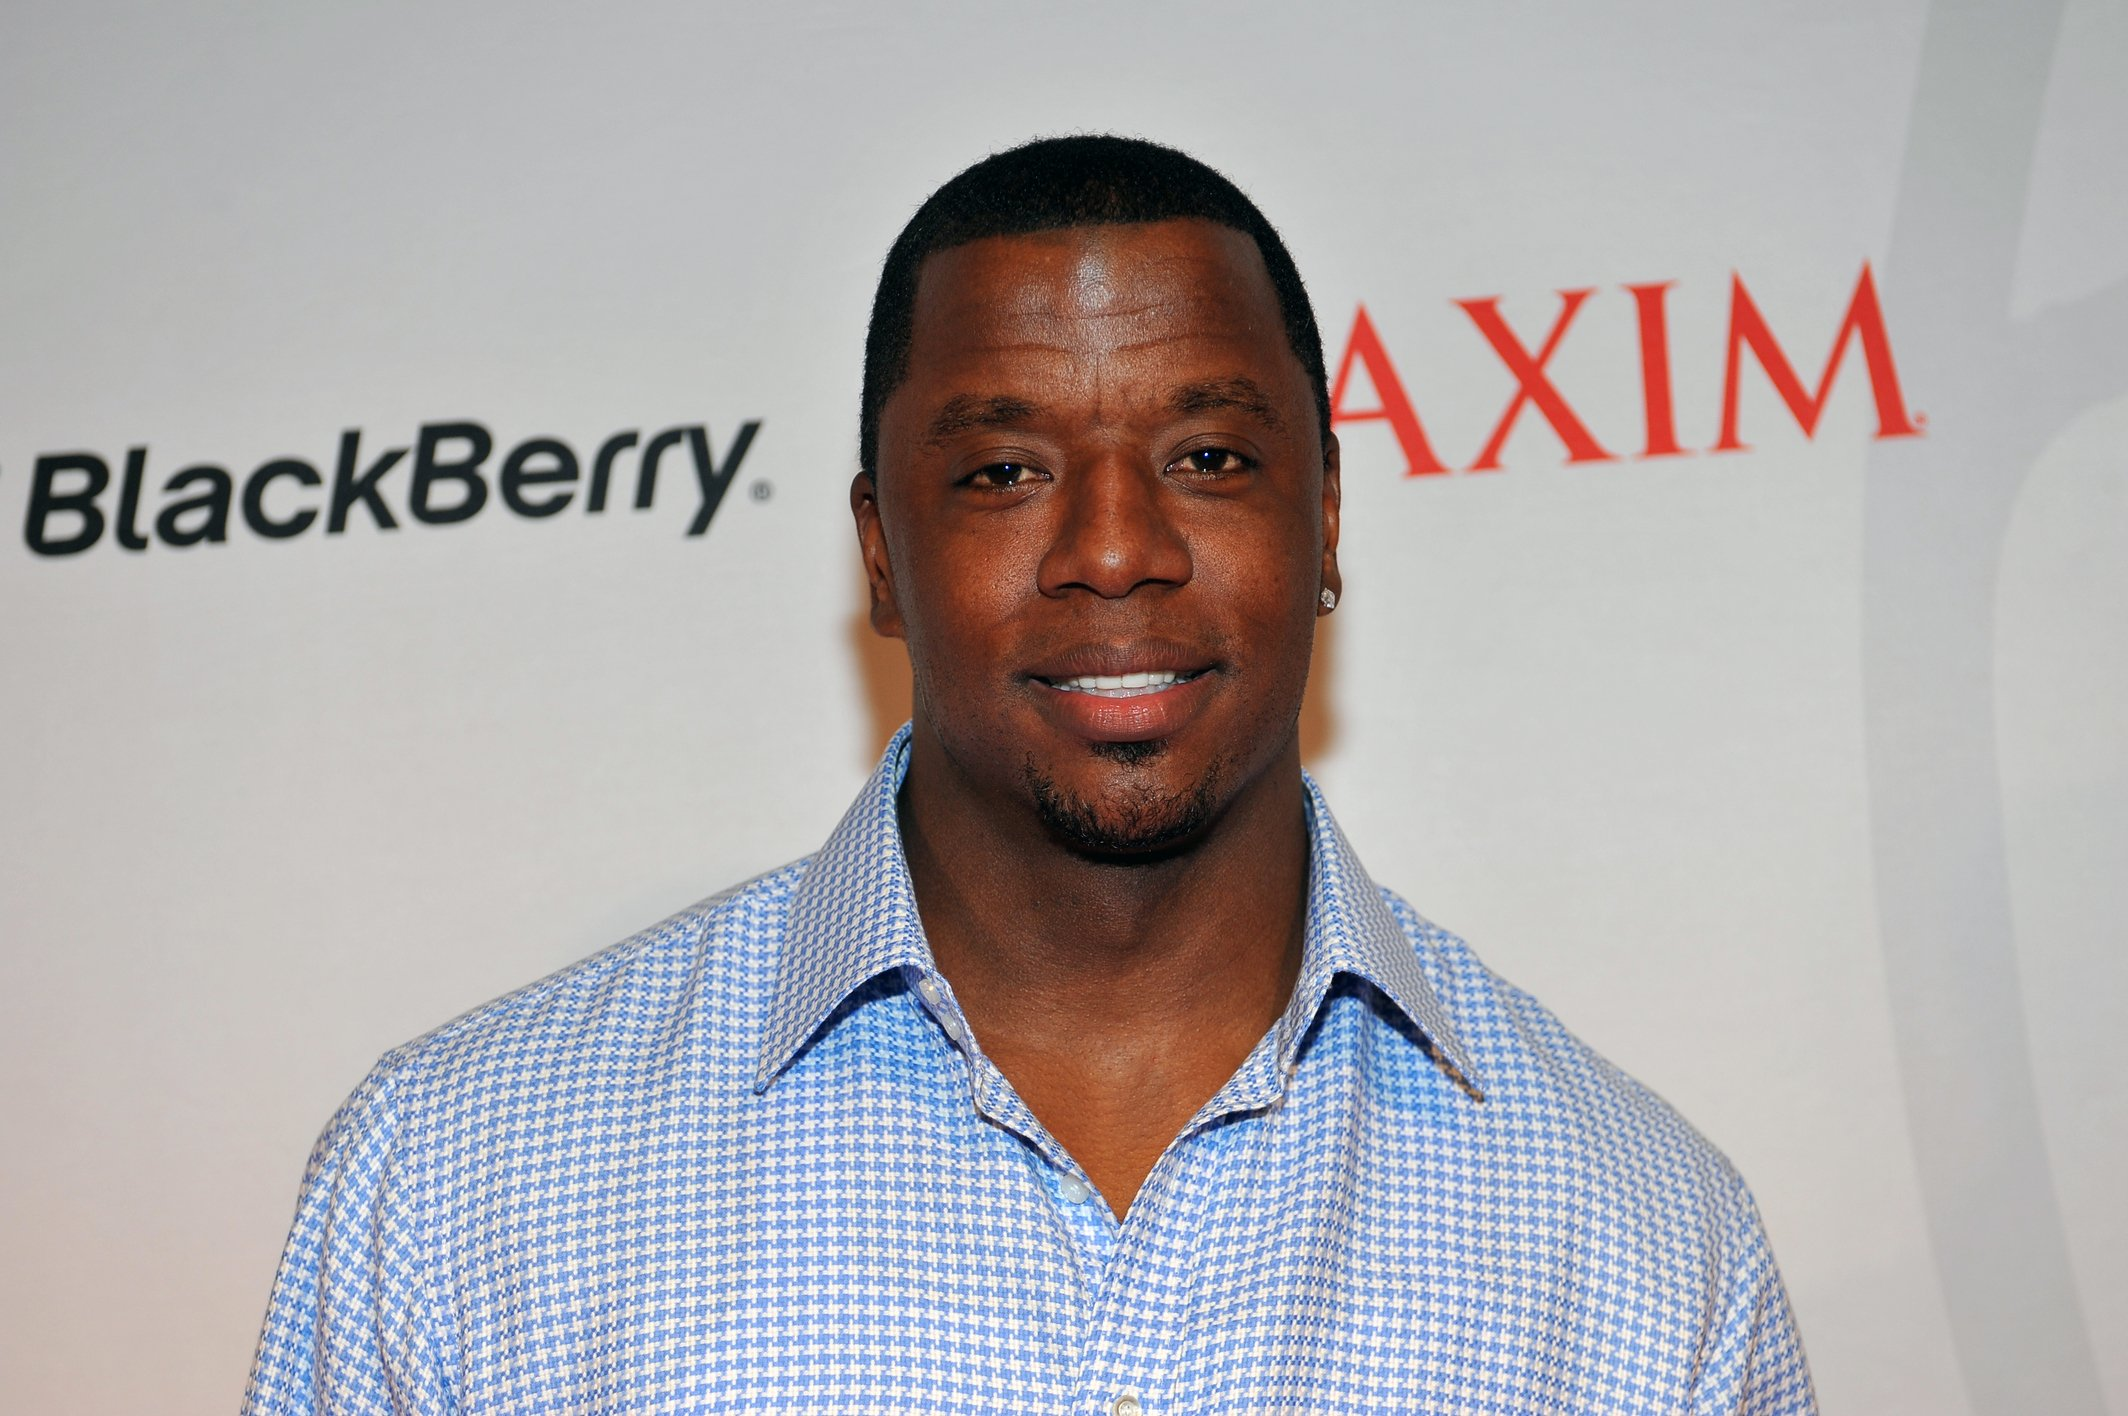 Kordell Stewart attends the Maxim Blackberry Madness Event on April 6, 2013 in Atlanta, Georgia | Photo by Moses Robinson/WireImage/GettyImages